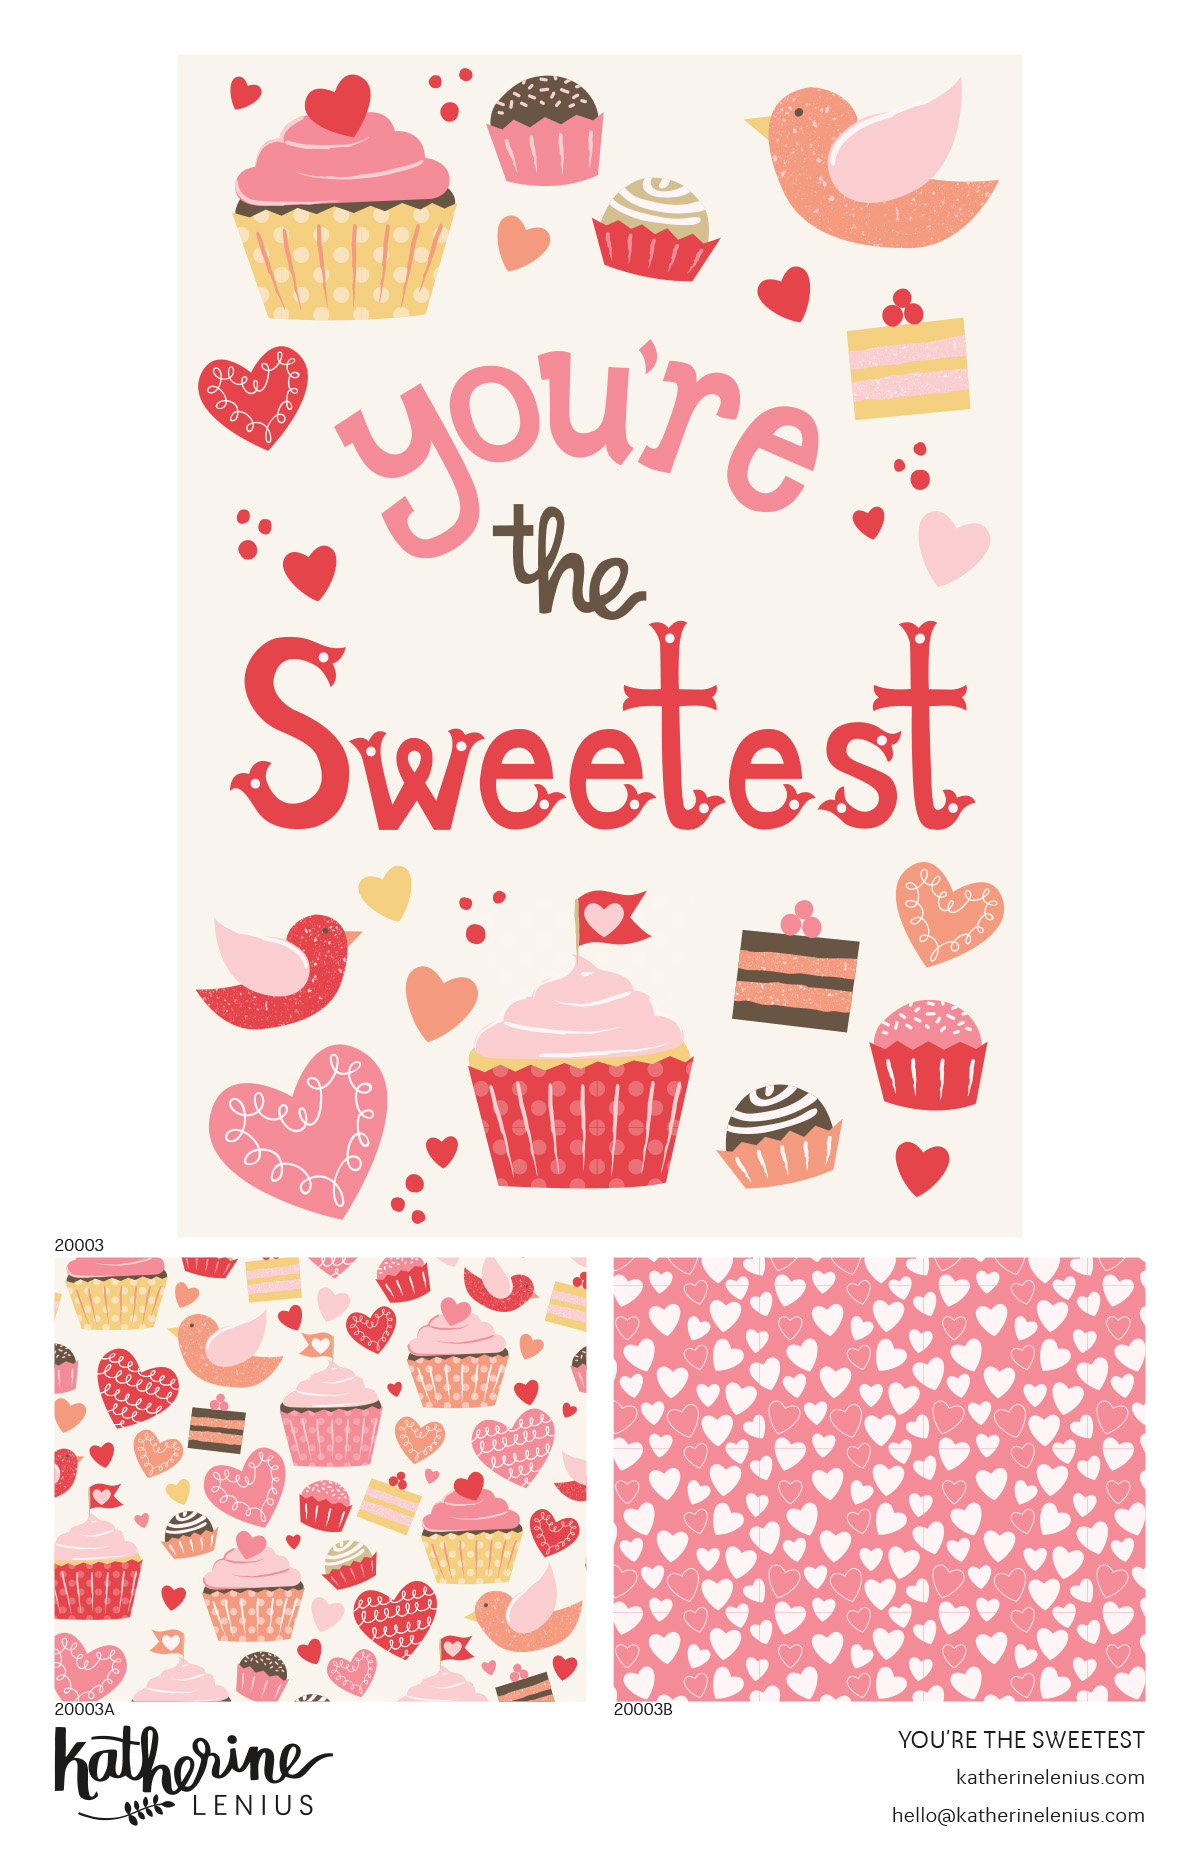 KL_20003_Youre the Sweetest copy.jpg